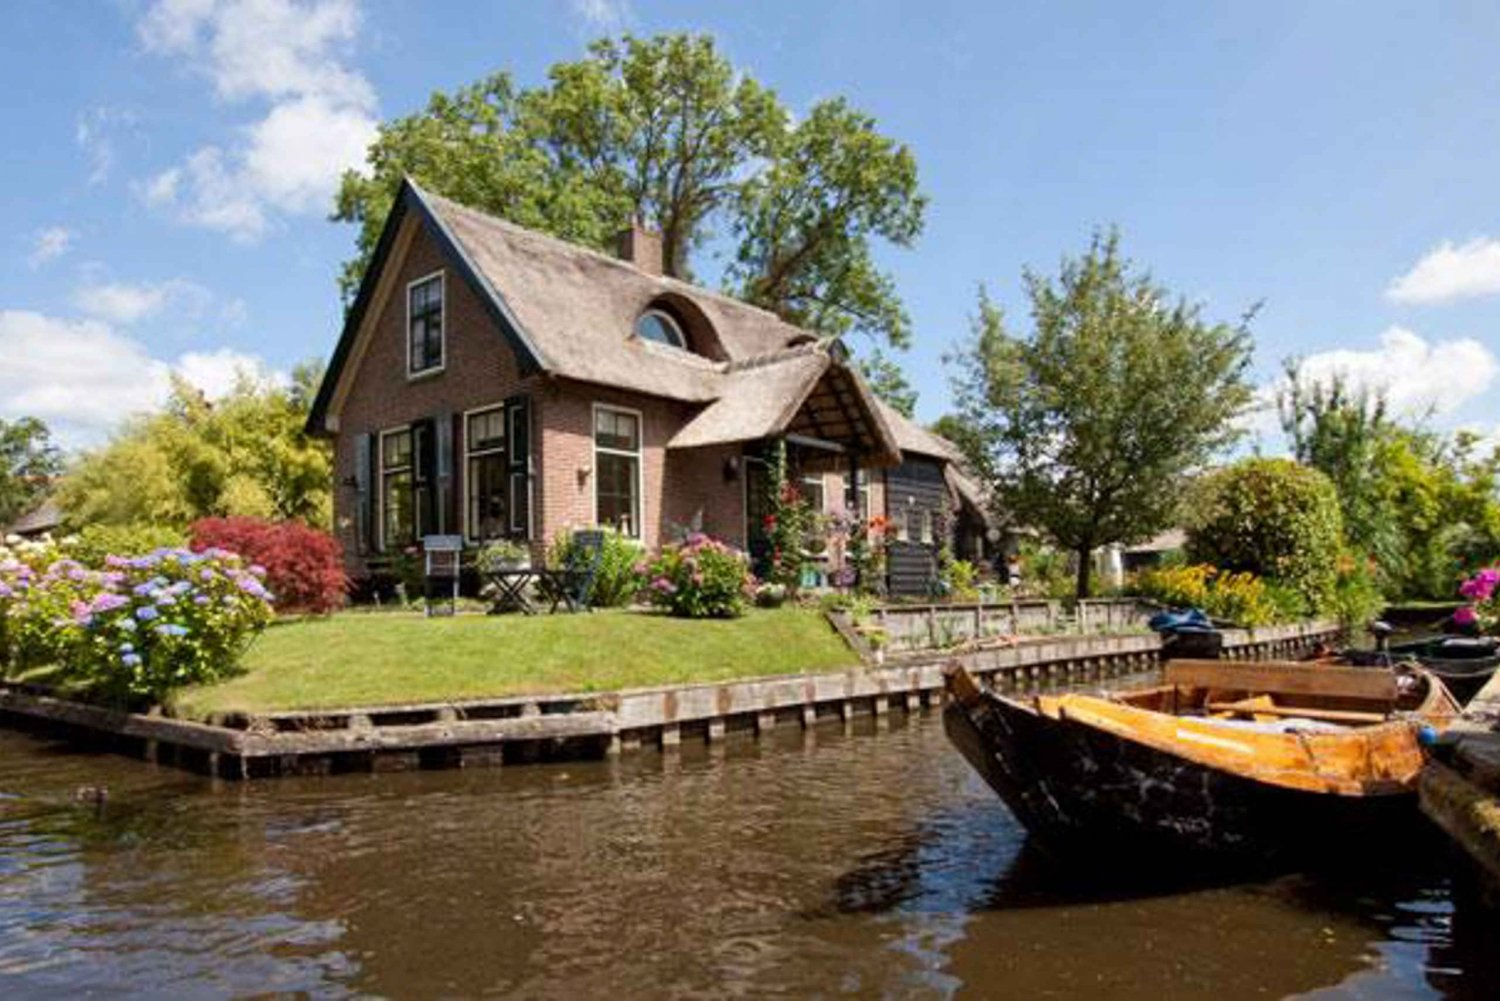 From Private Giethoorn Tour by Car